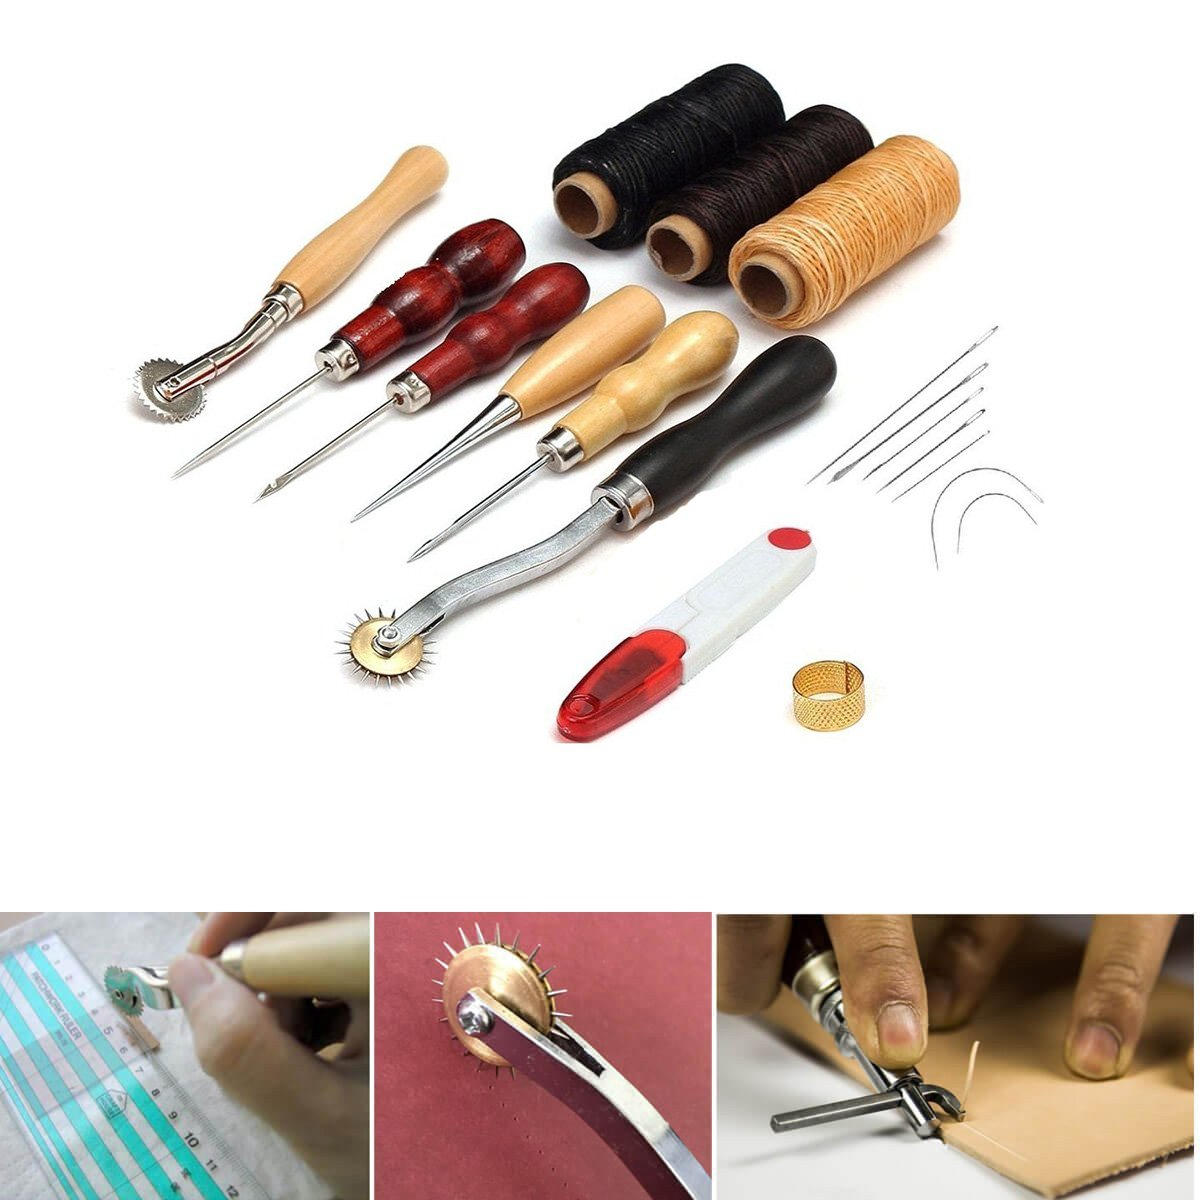 13pcs/Set DIY Leather Craft Sewing Tools Leather Hand Tools Kit Leathercraft Set Punch for Stitching Carving Working Sewing Saddle Groover DIY Leather Drilling Grinding Tool Home Handwork Accessories WElinks